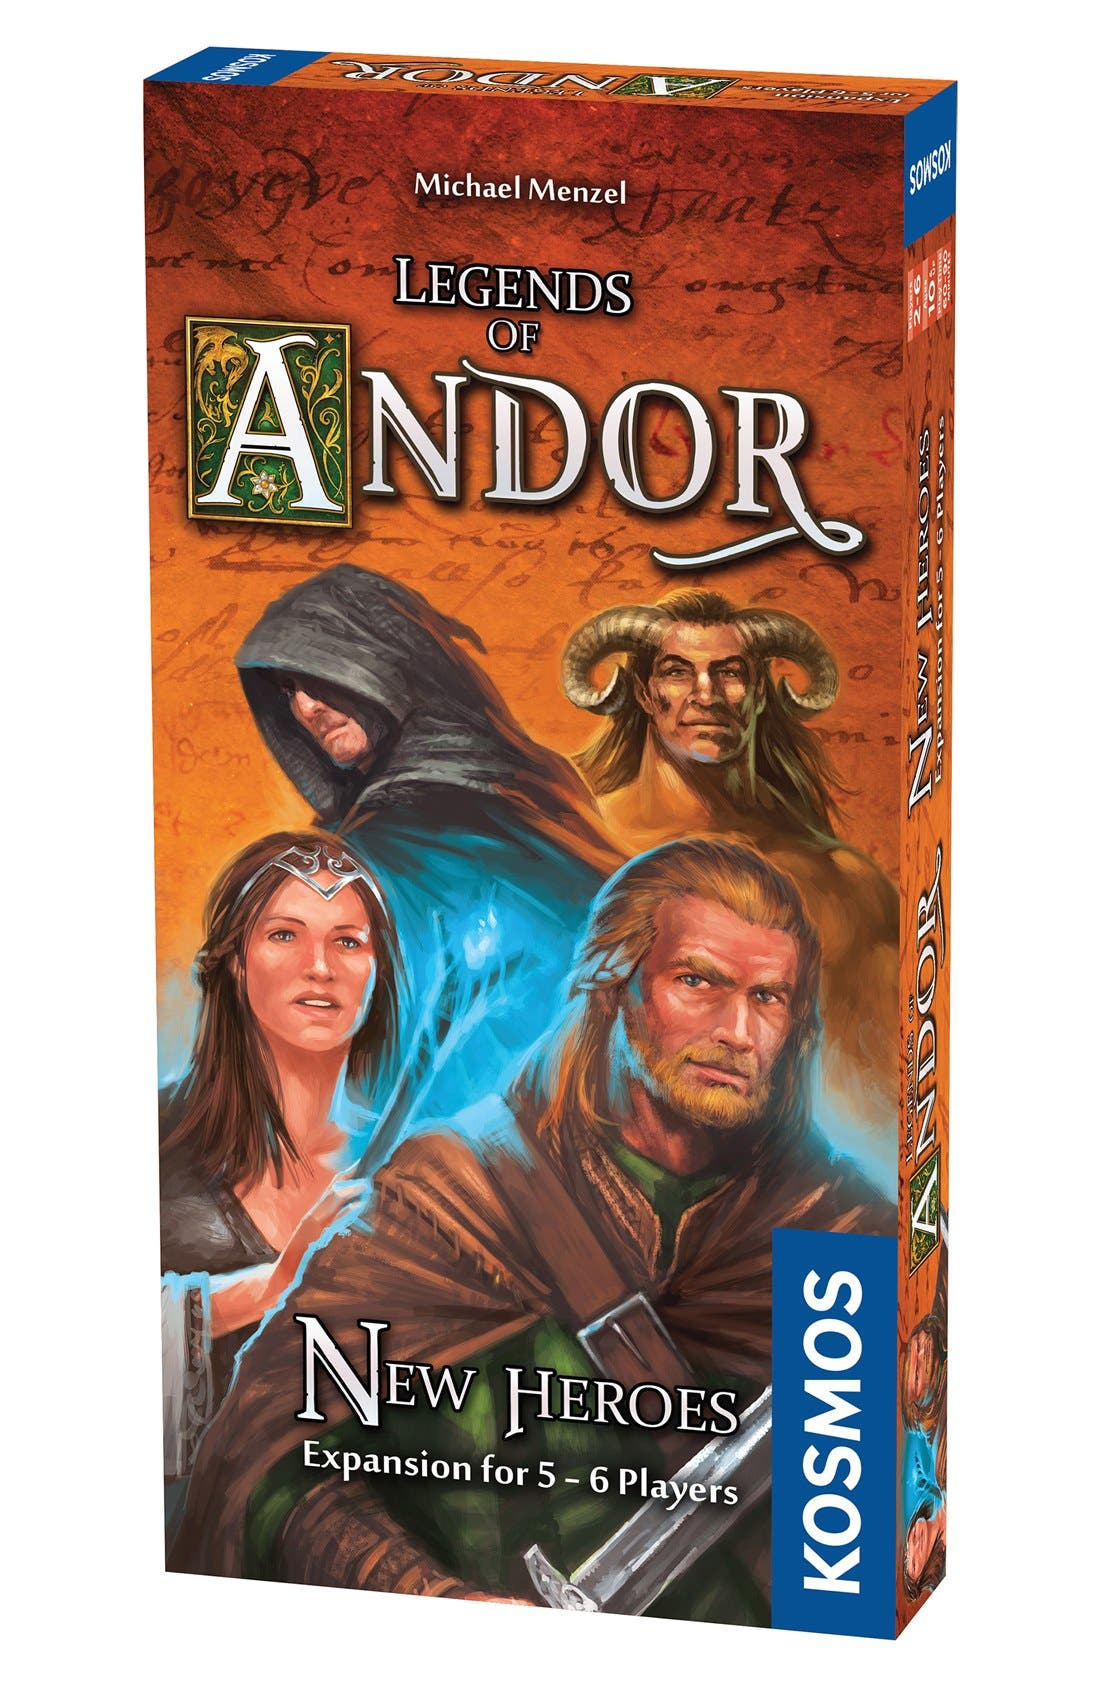 Boys Thames  Kosmos Legends Of Andor  New Heroes Game Expansion Pack